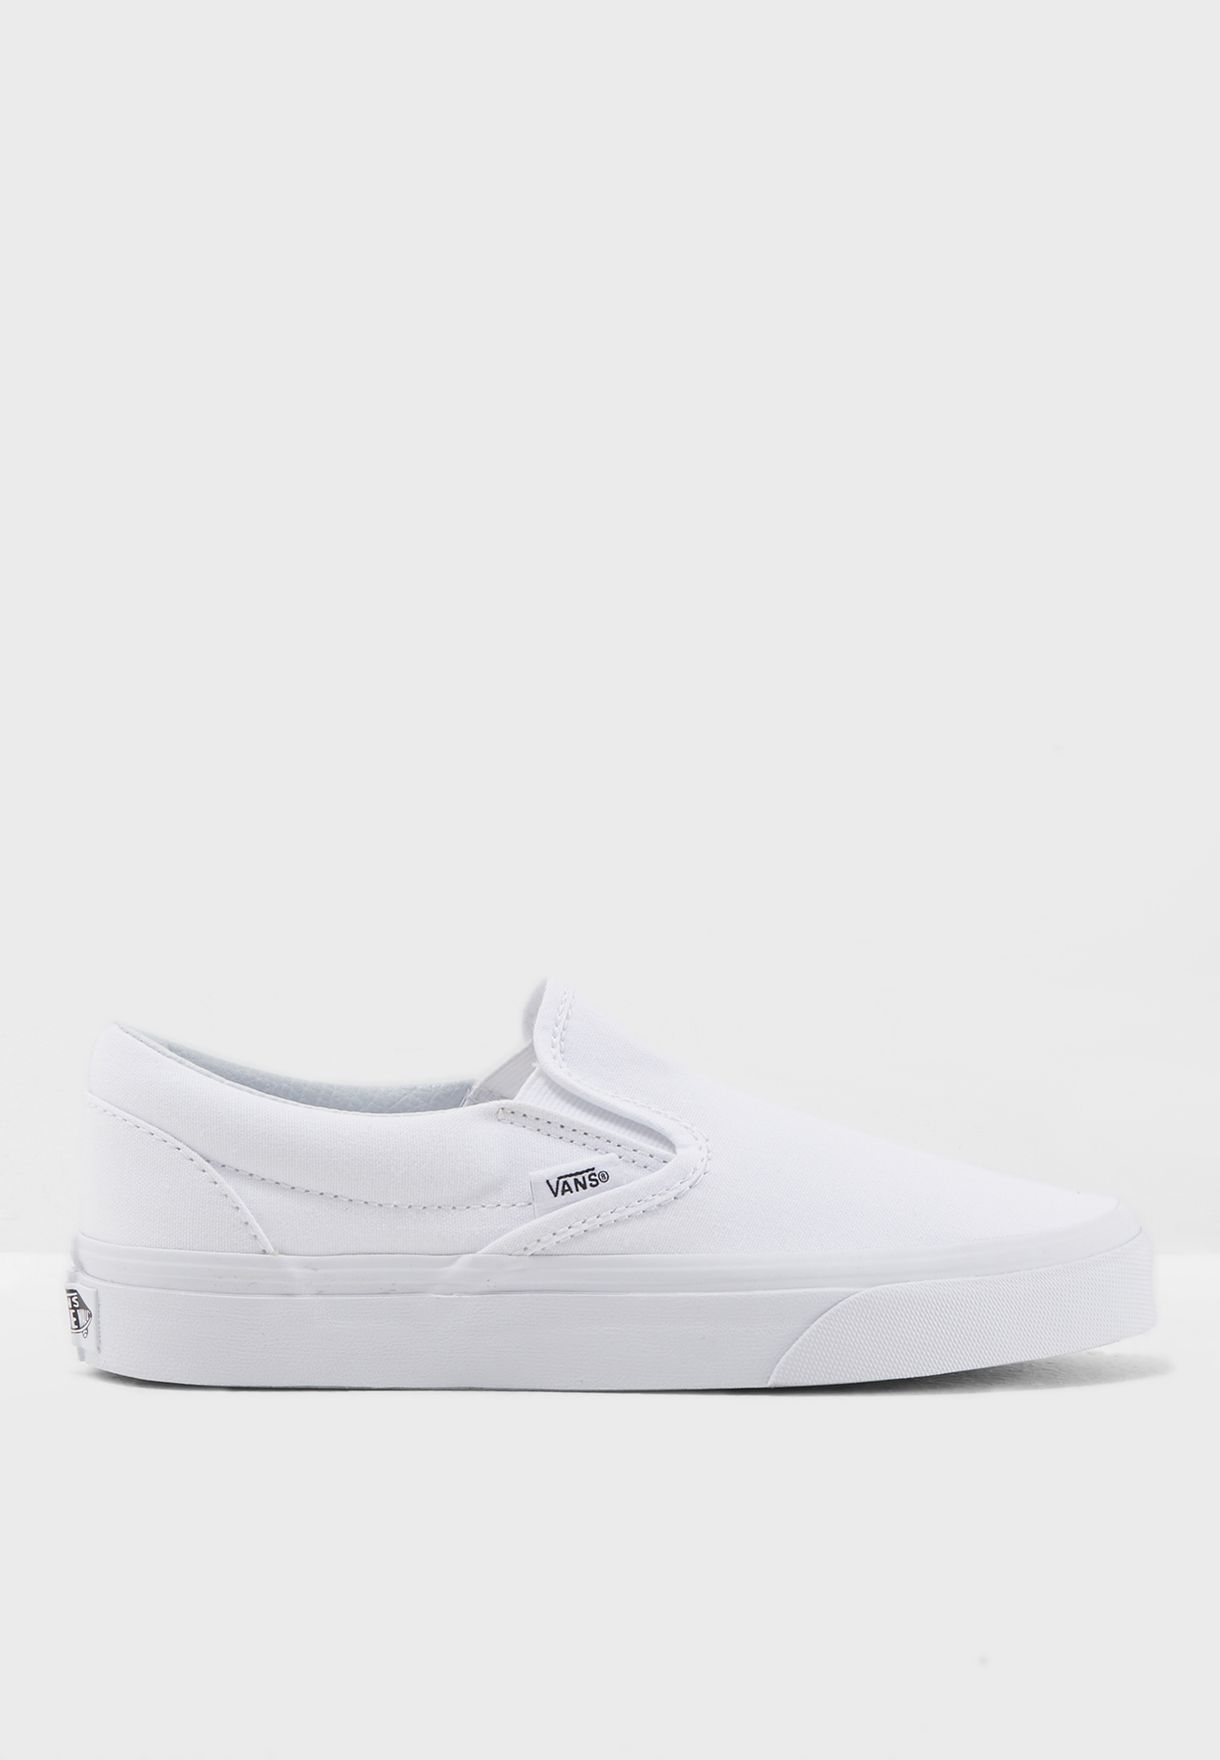 c5524d077977a3 Shop Vans white Classic Slip Ons EYEW00 for Women in Saudi ...